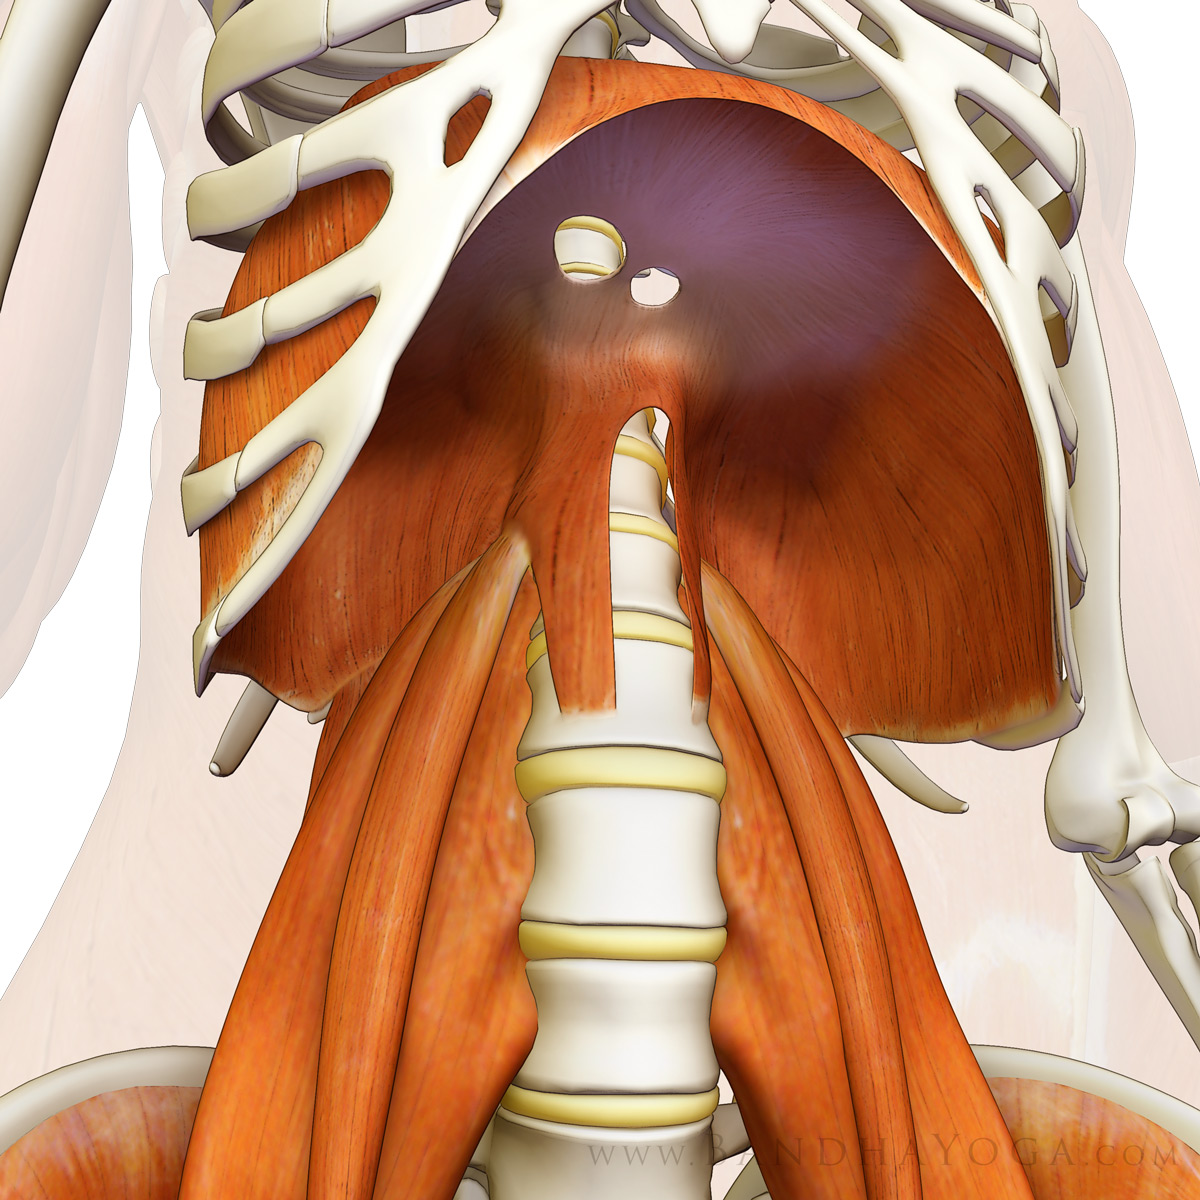 Anatomical diagram of the thoracic diaphragm